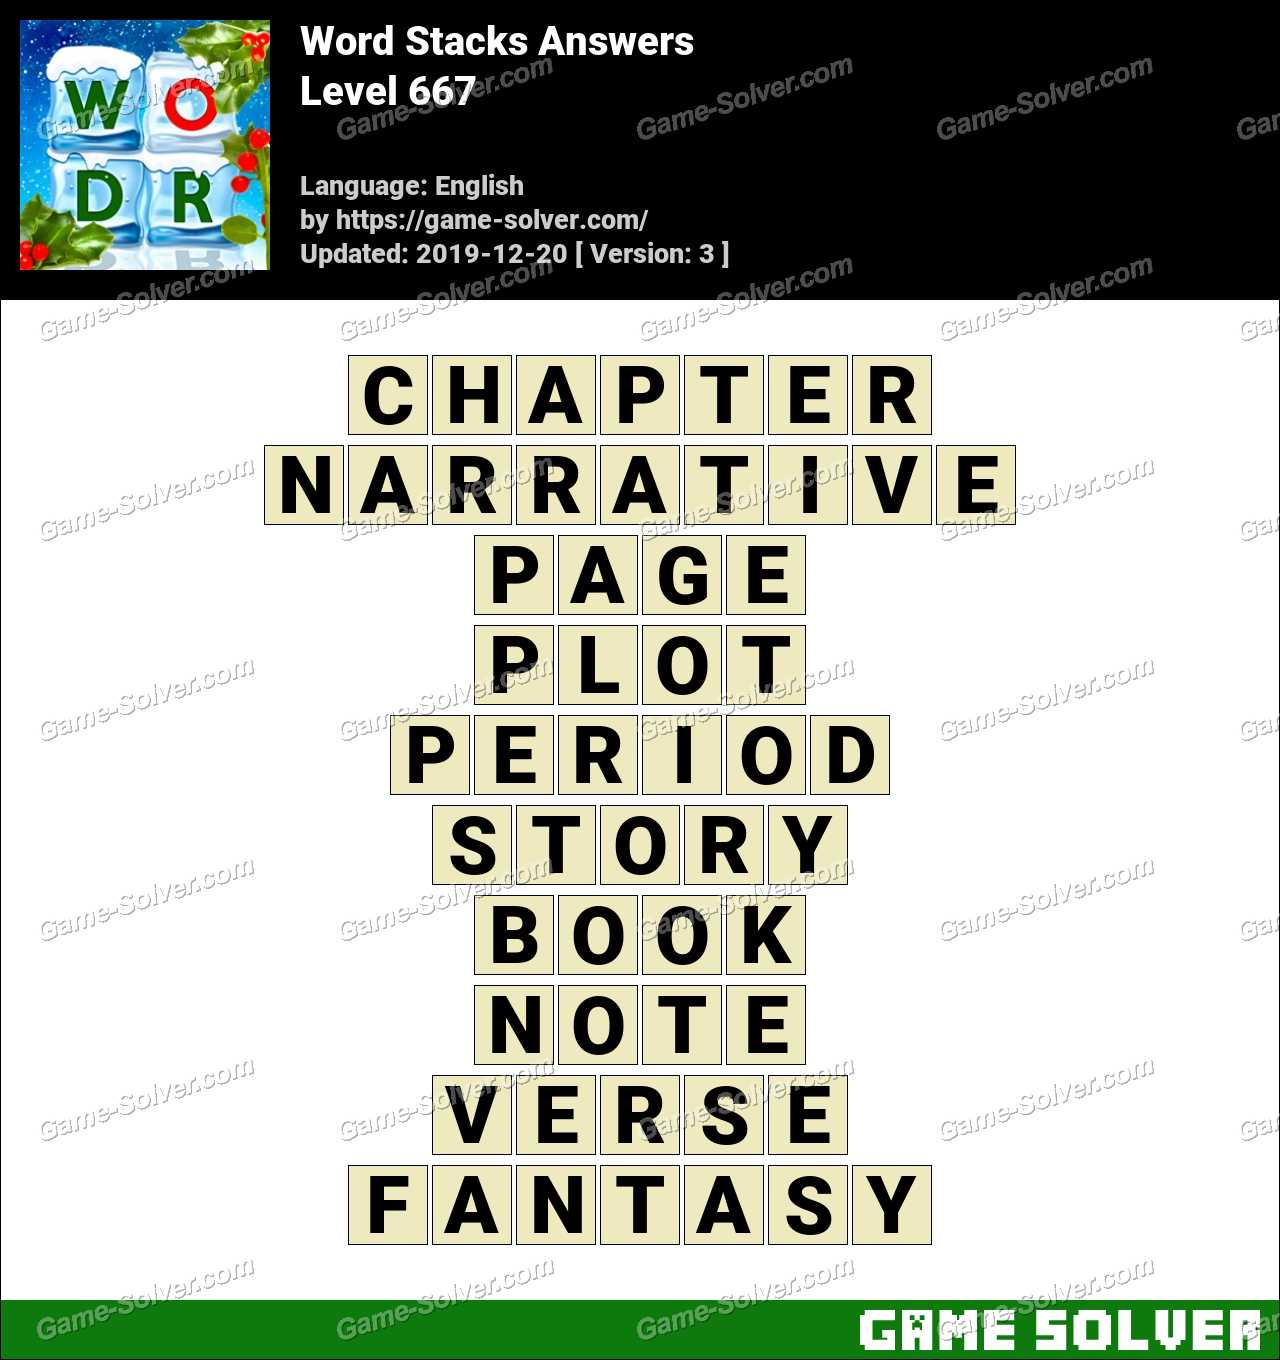 Word Stacks Level 667 Answers